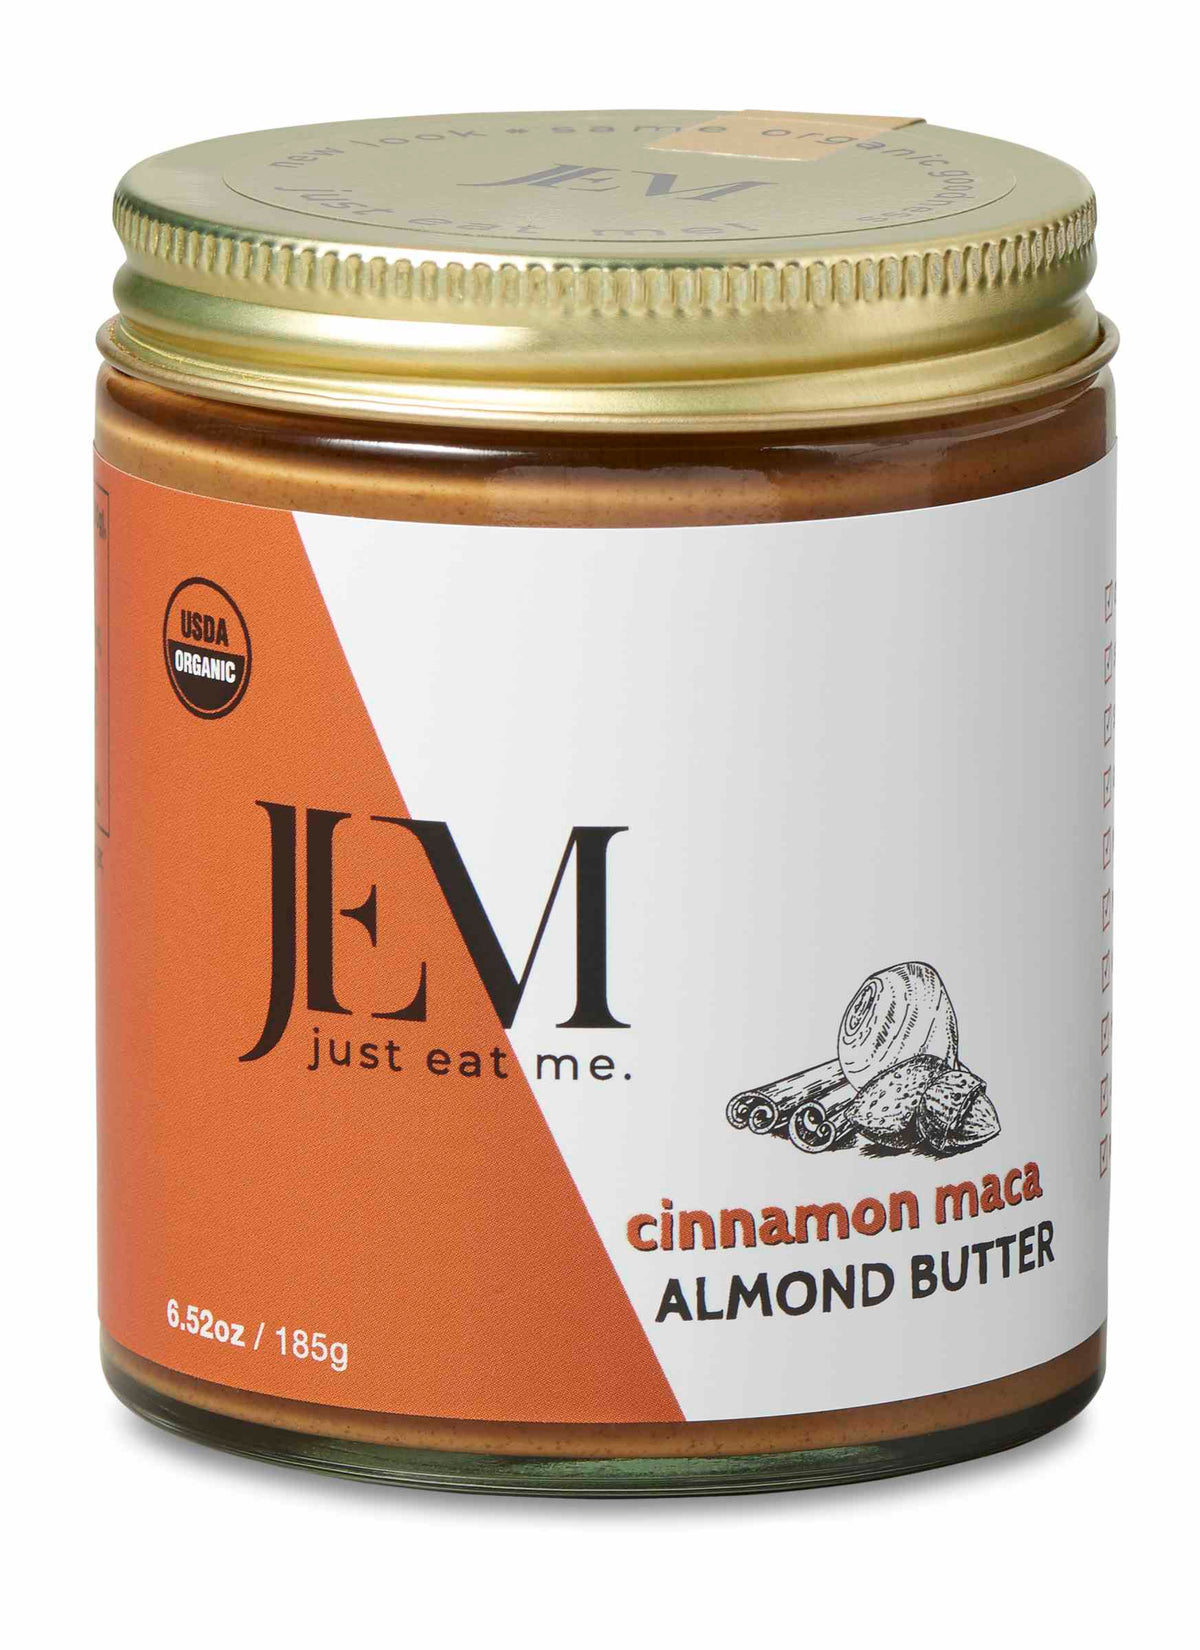 JEM Cinnamon Red Maca Almond Butter (185g, 454g)